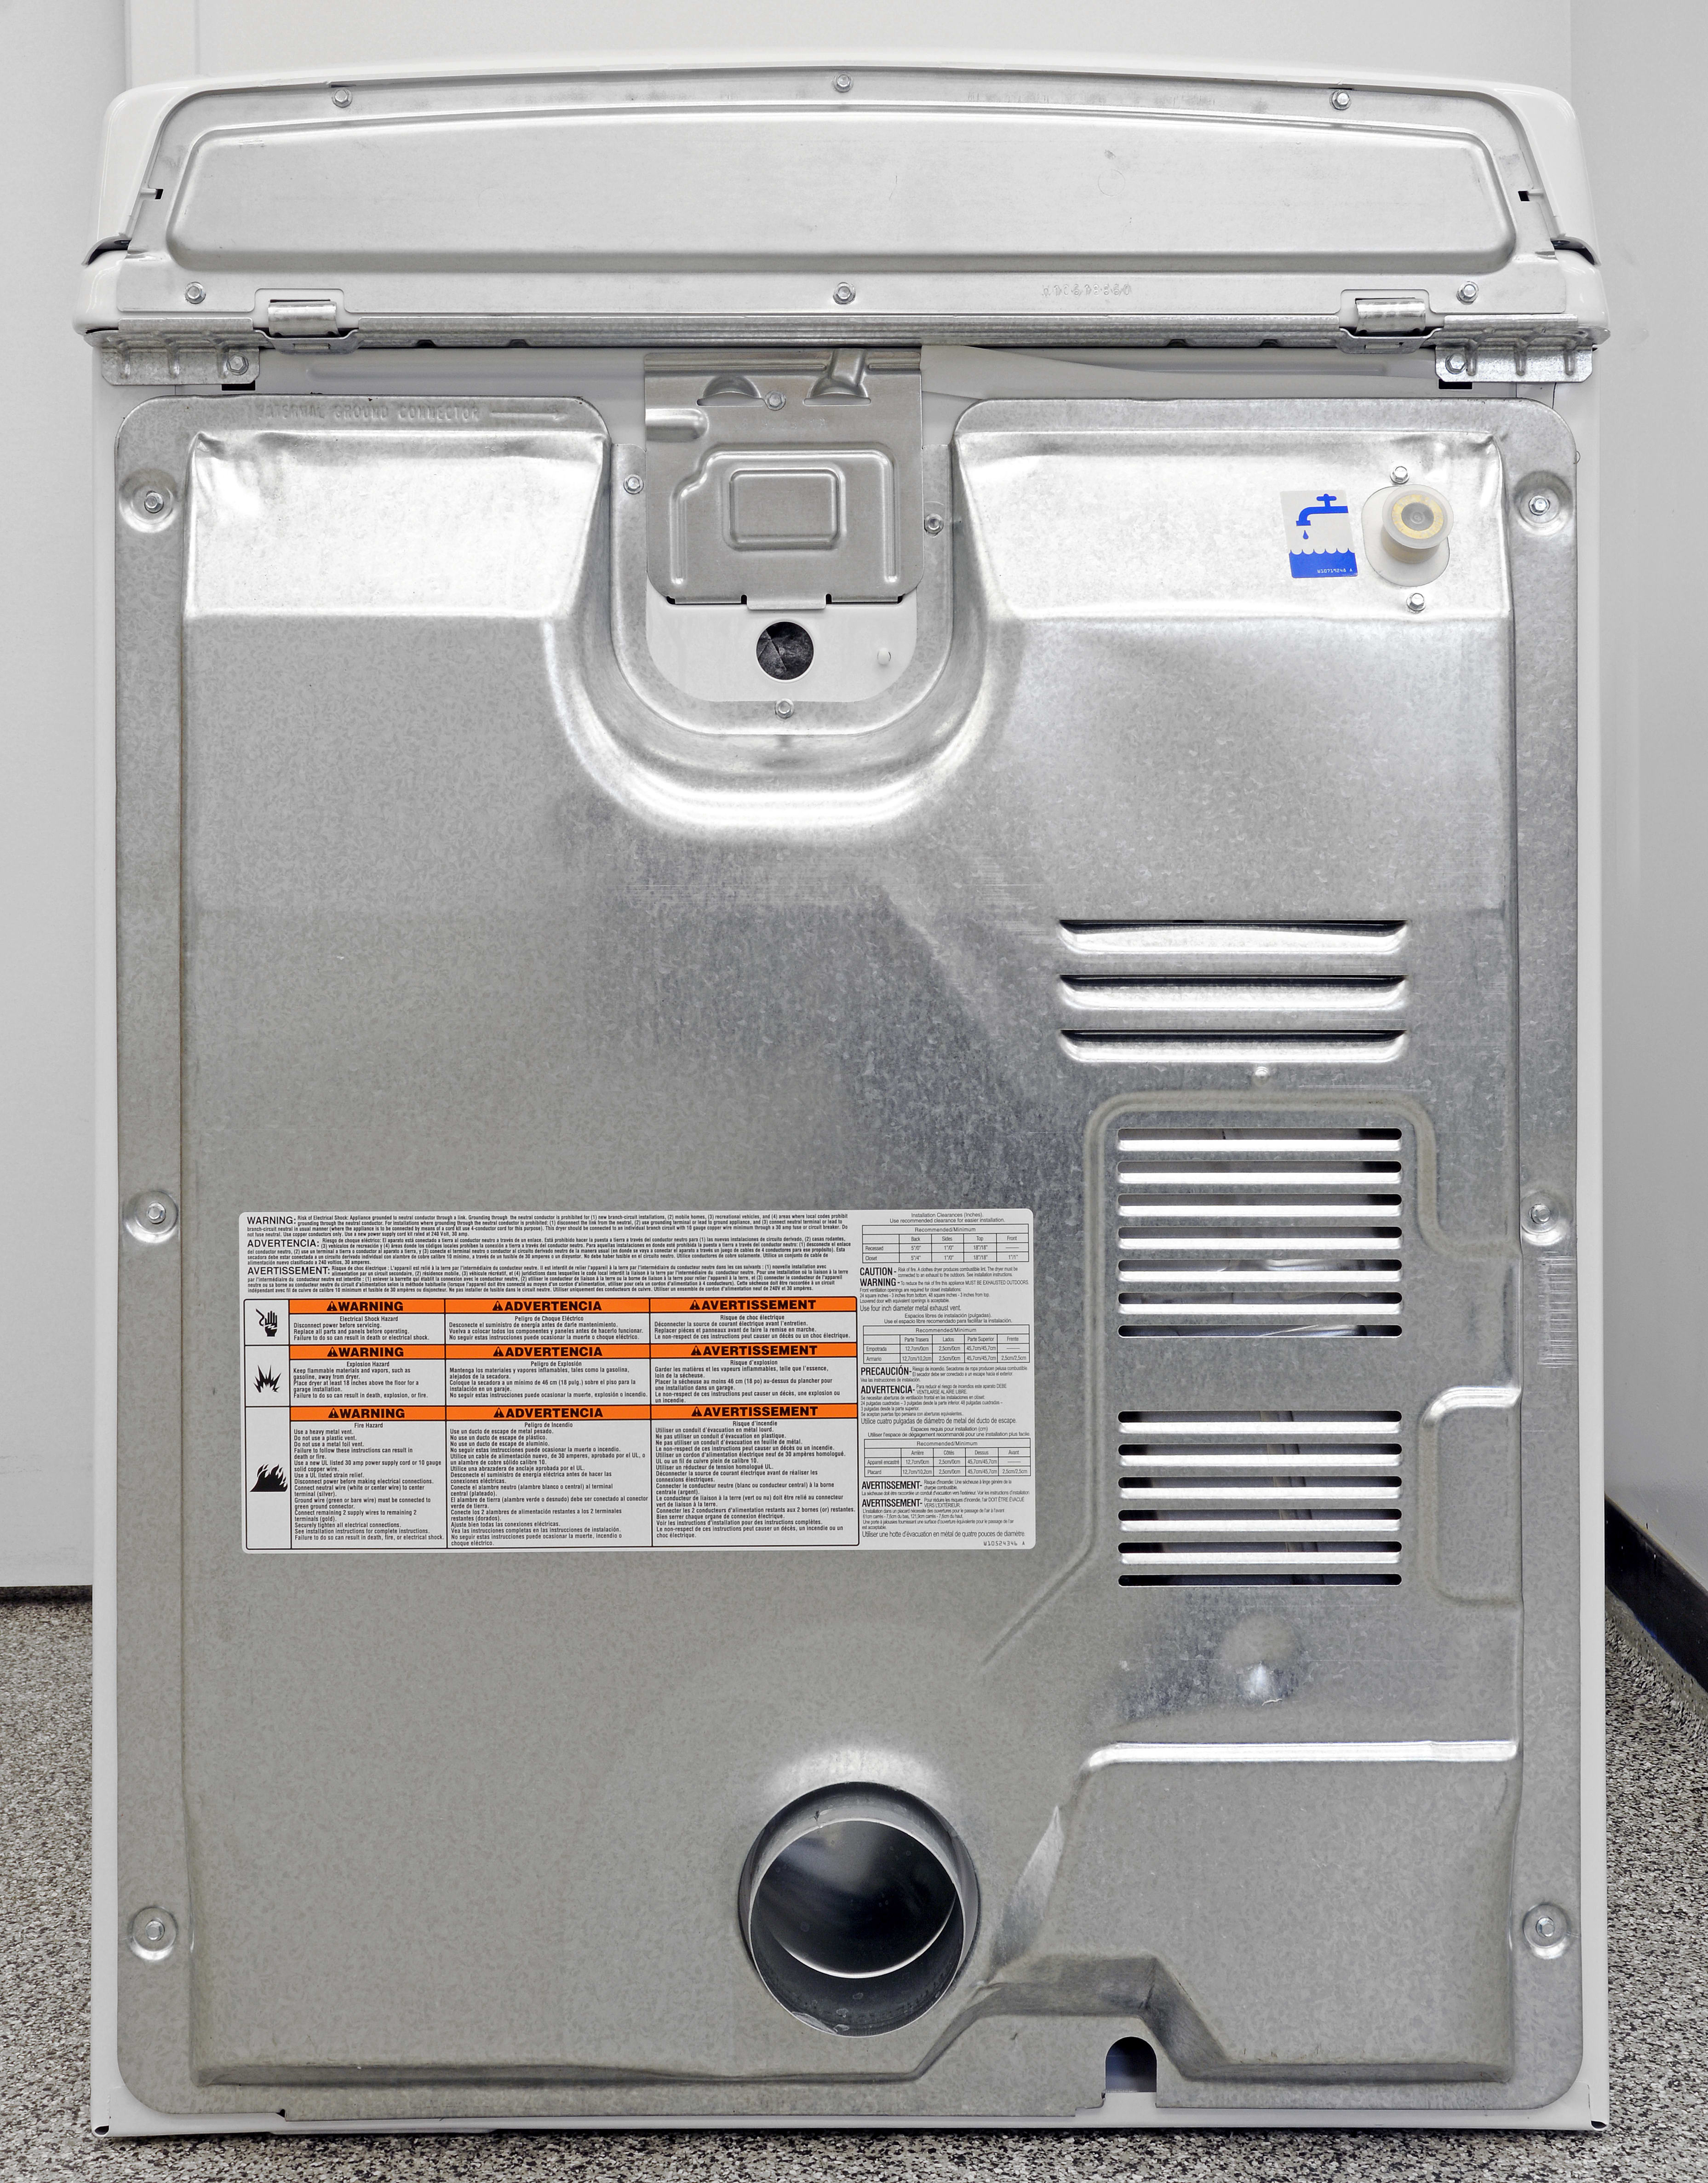 The Whirlpool Cabrio WED7300DW has a water hookup in back, allowing you to use steam-based cycles and features.